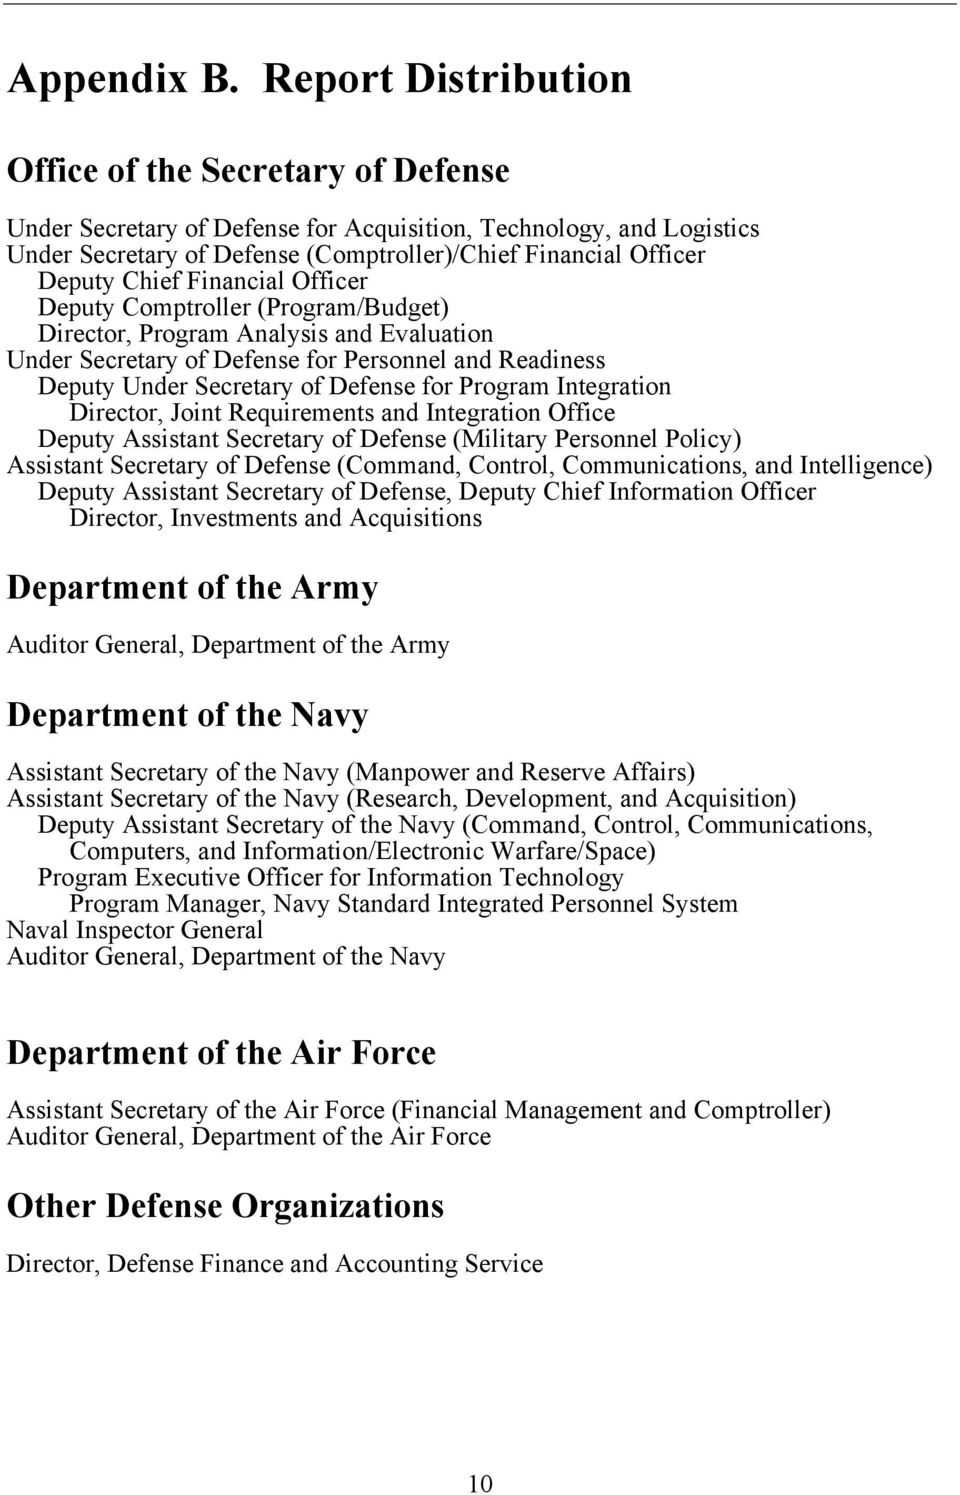 Chief Financial Officer Deputy Comptroller (Program/Budget) Director, Program Analysis and Evaluation Under Secretary of Defense for Personnel and Readiness Deputy Under Secretary of Defense for